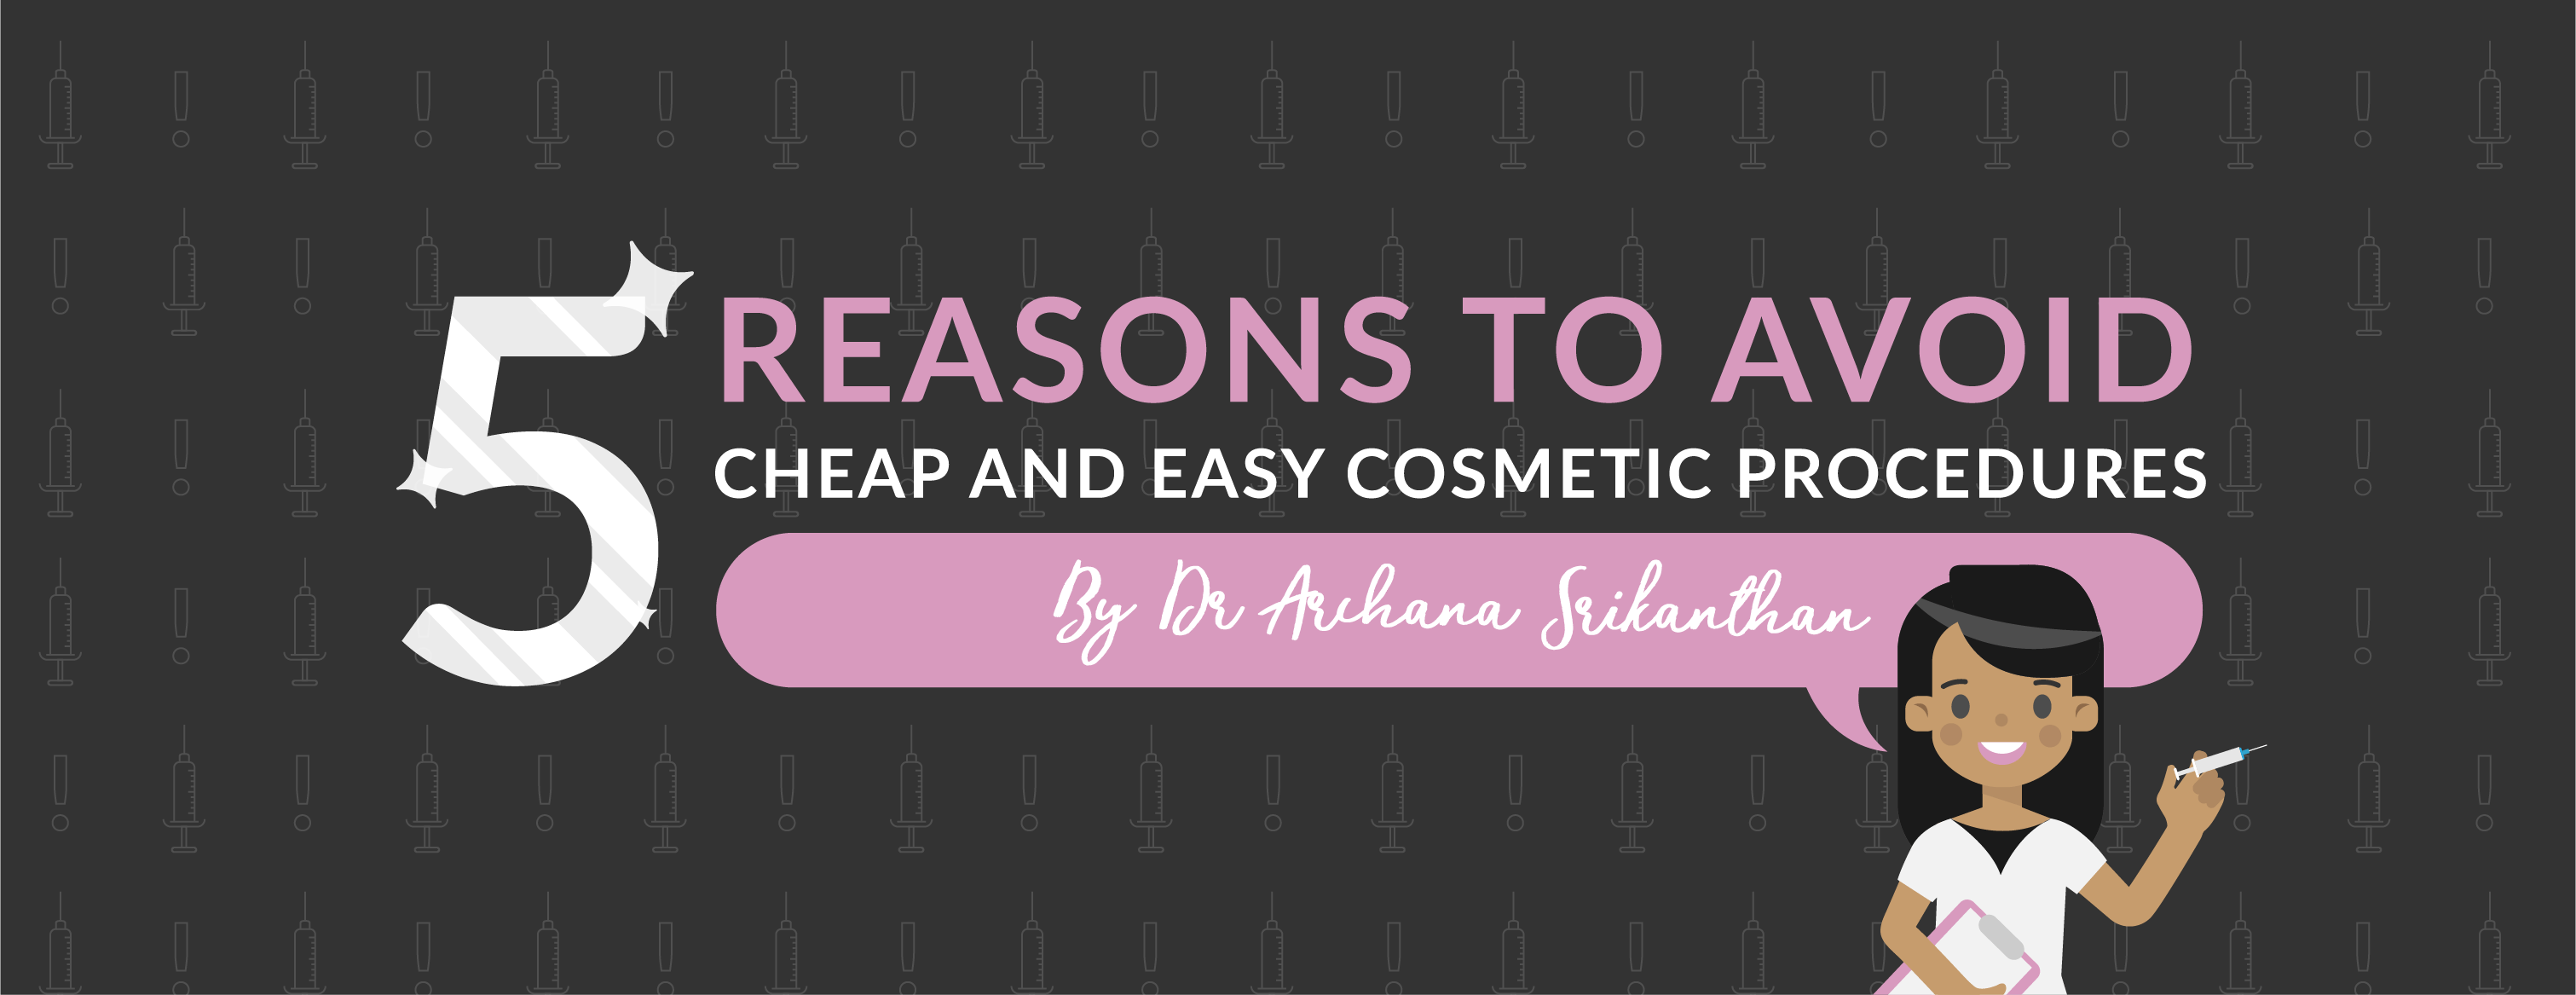 Artboard 1 copy 2 1 - 5 reasons to avoid cheap and easy cosmetic procedures